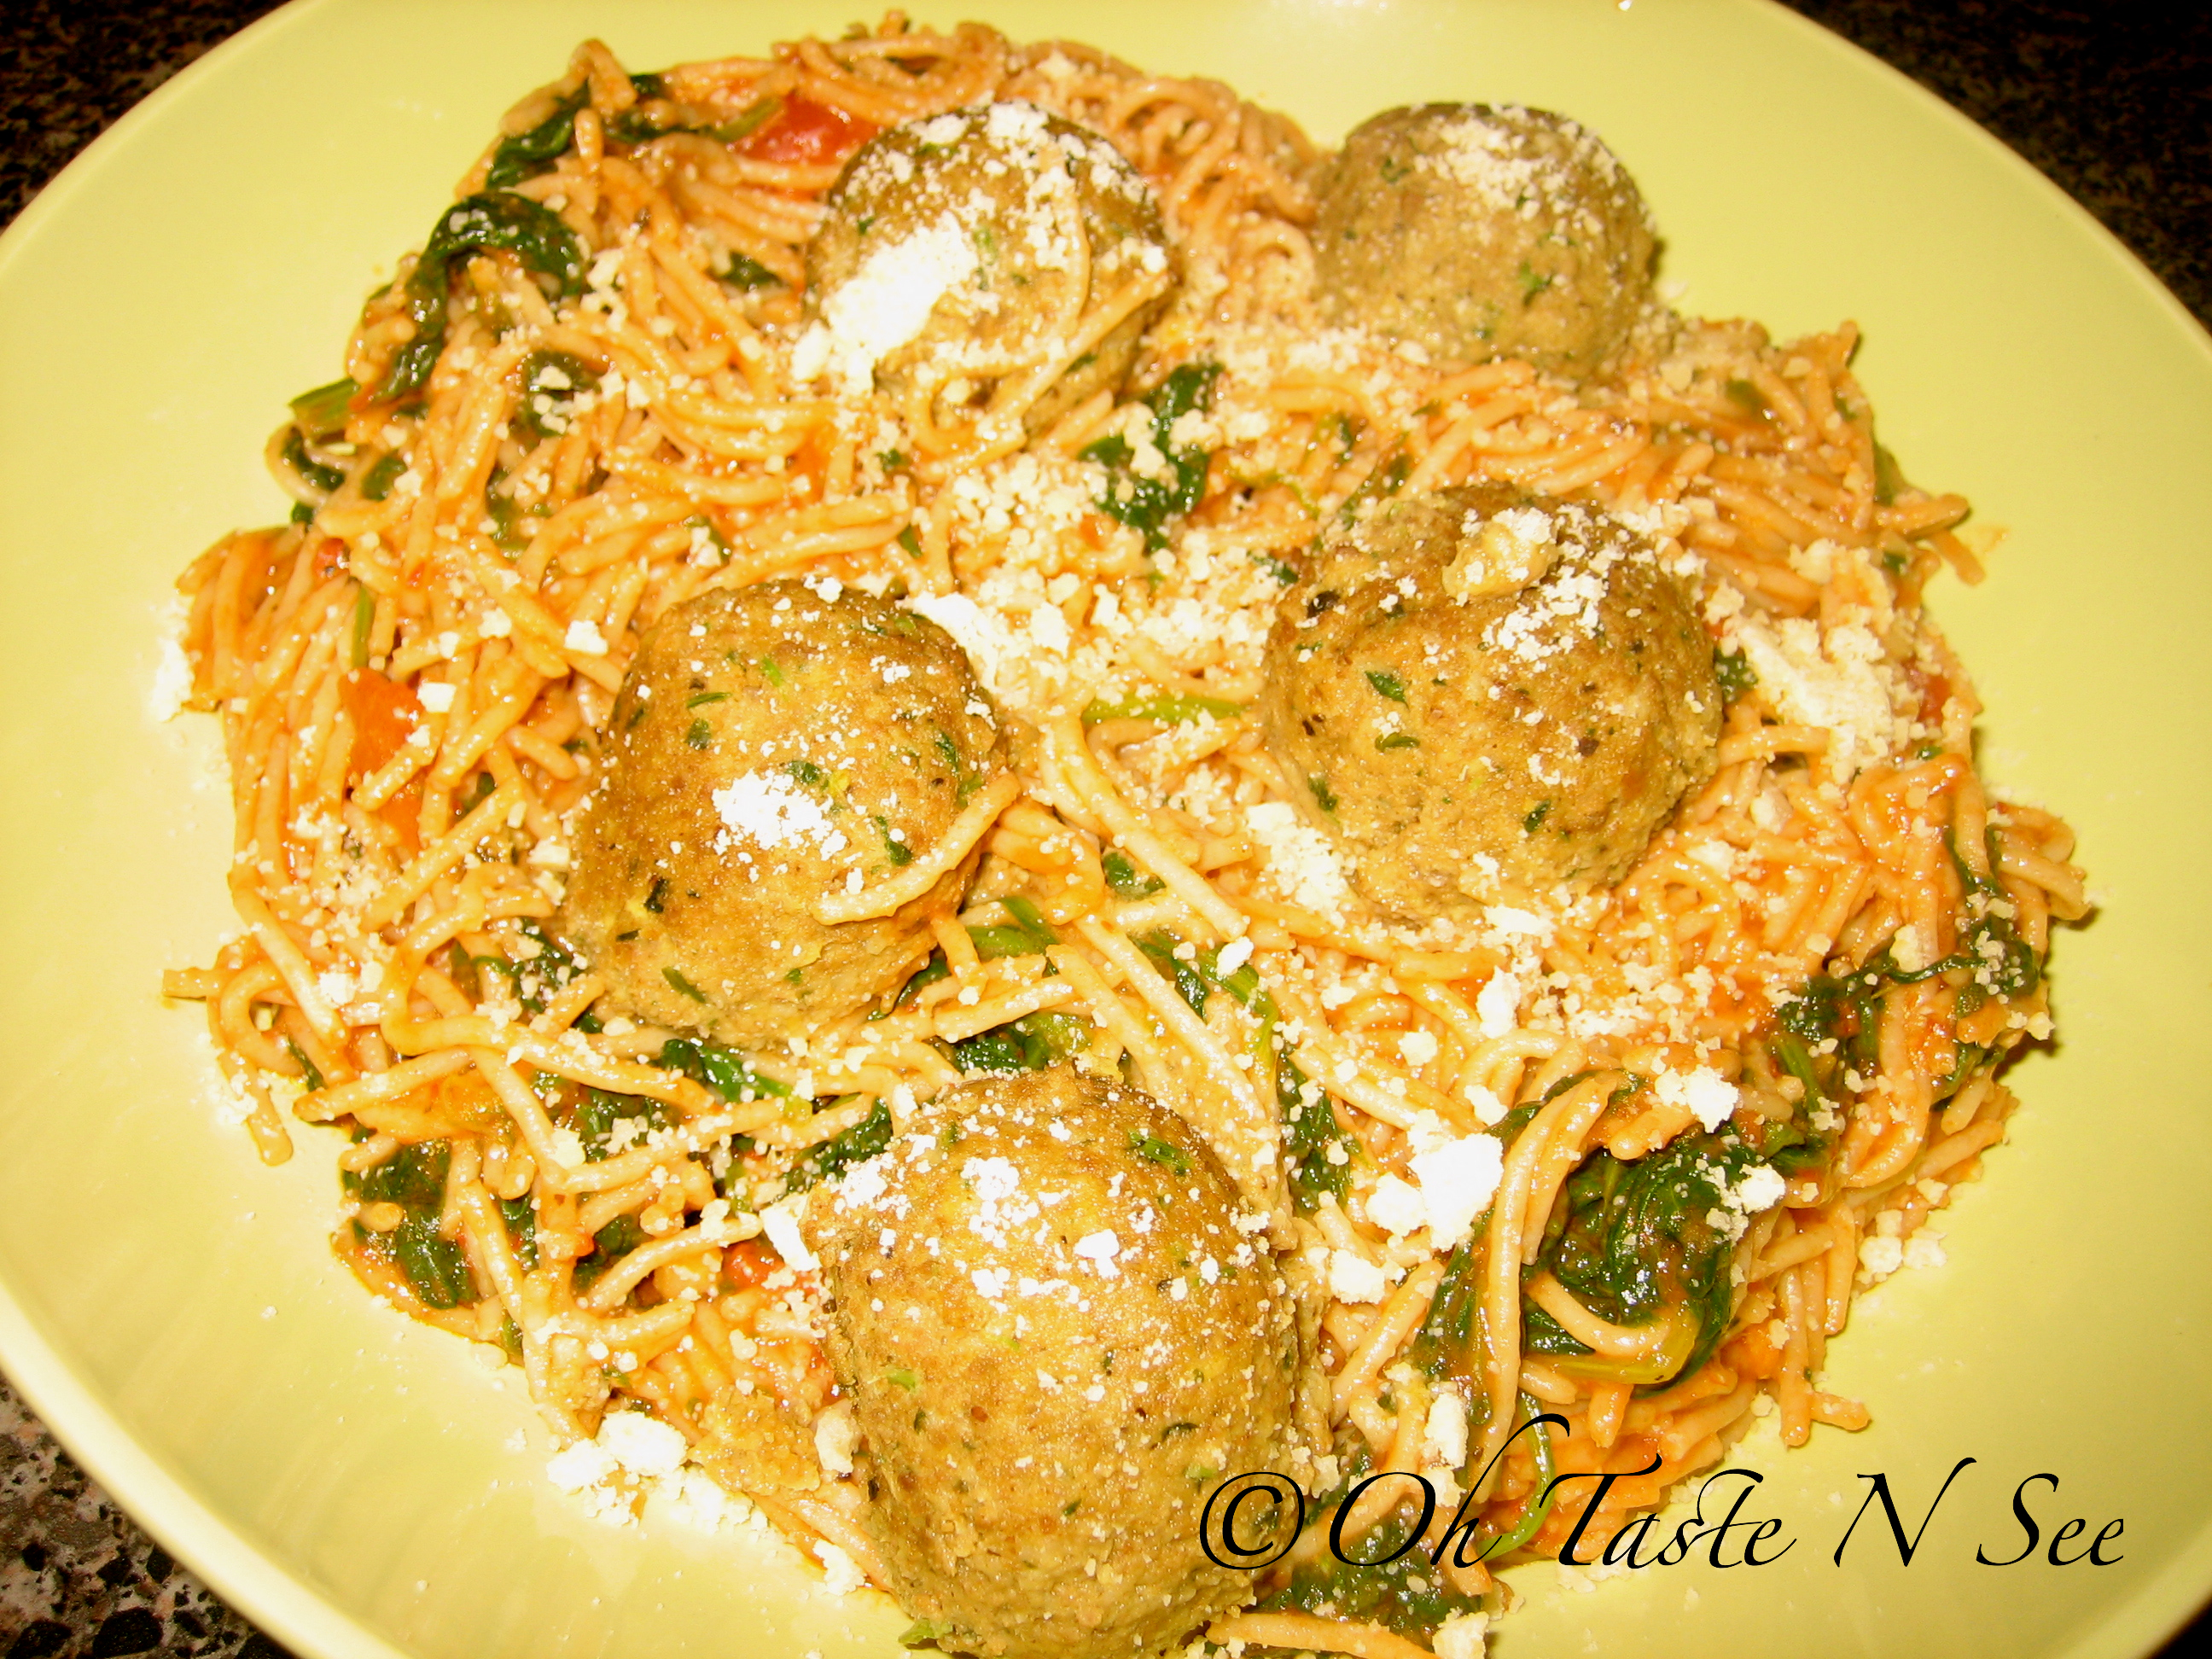 Spaghetti meatballs in roasted tomato sauce